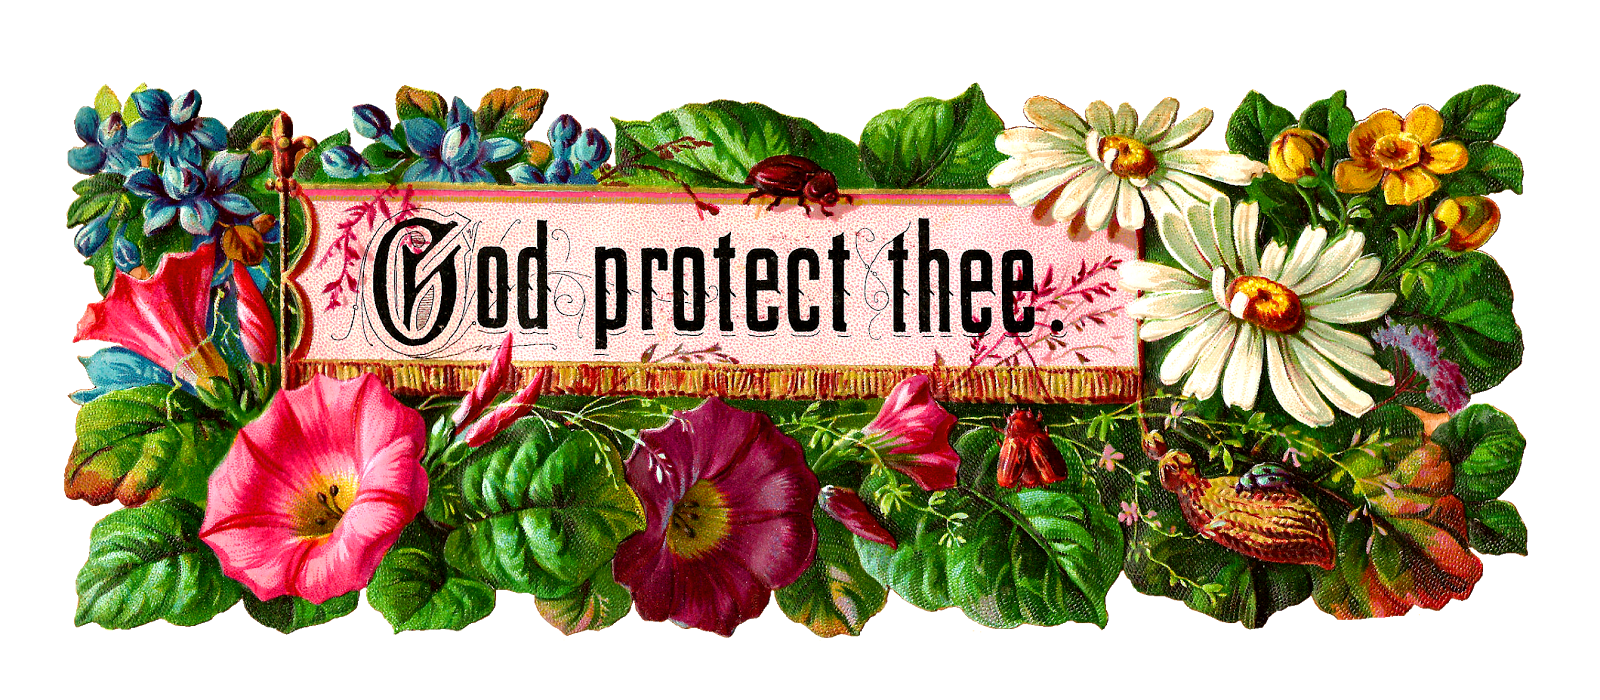 Antique Images  Free Flower Clip Art  Religious Flower Label With God